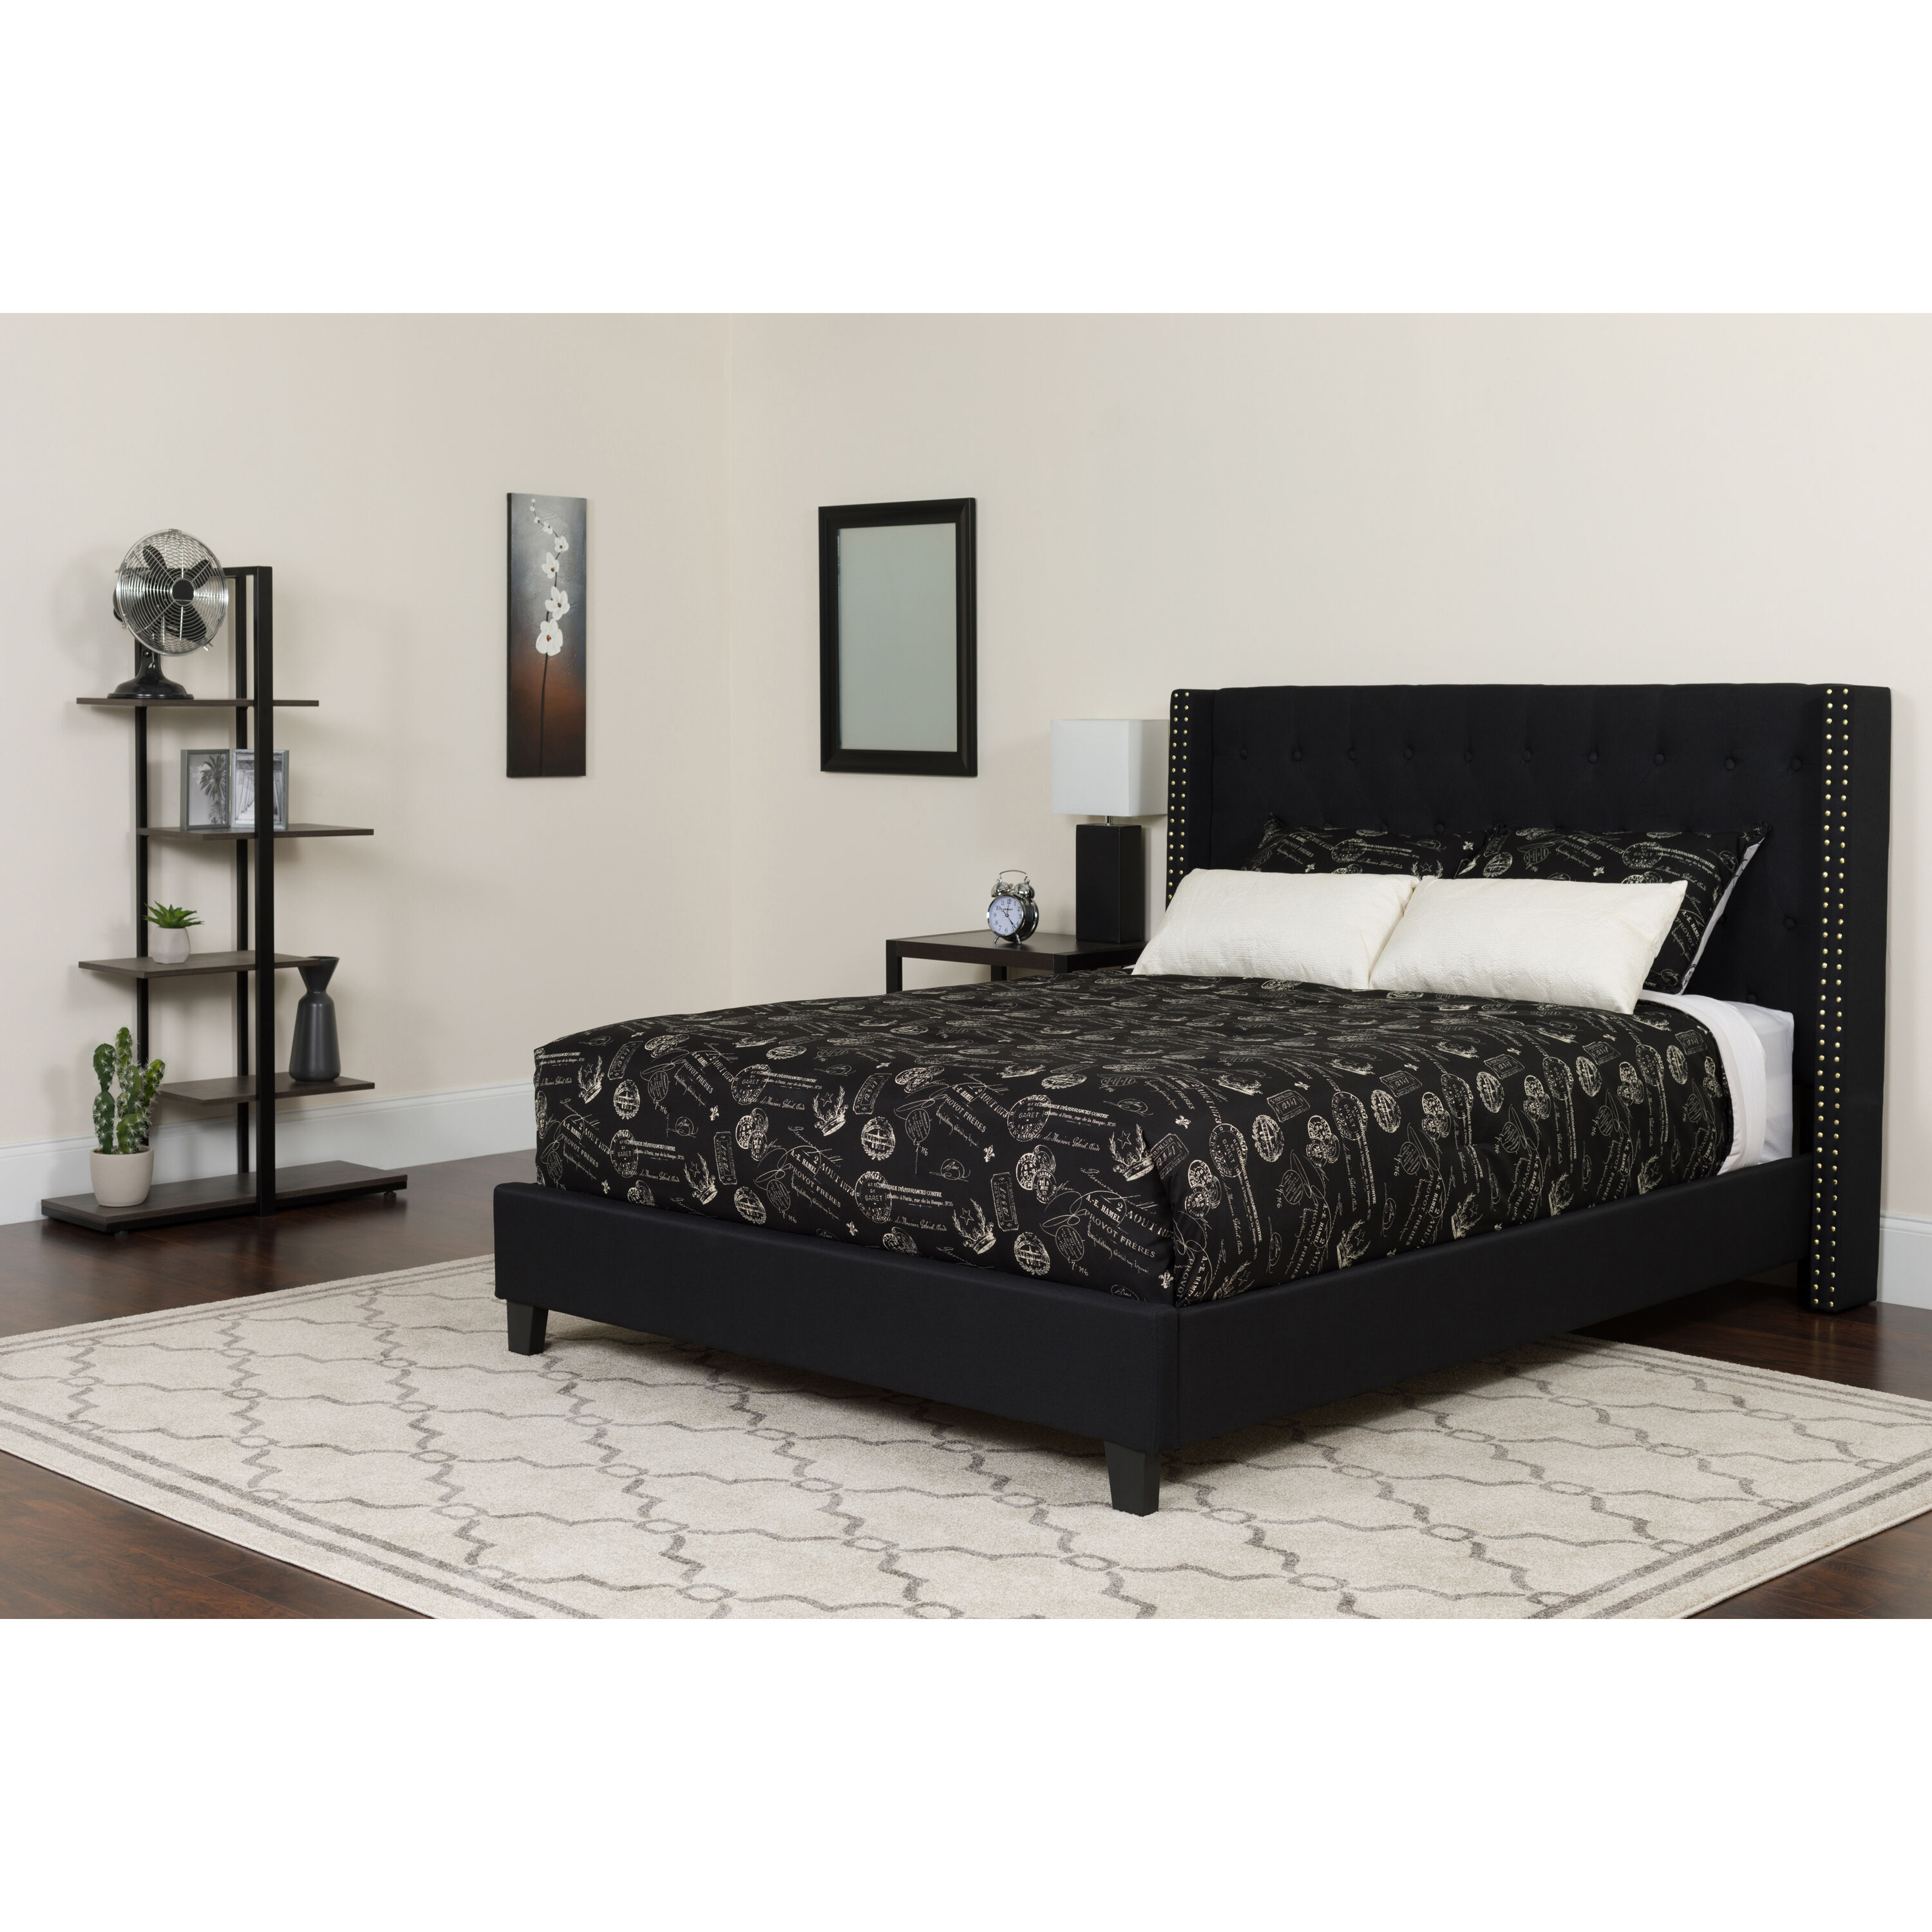 ... Our Riverdale Queen Size Tufted Upholstered Platform Bed In Black  Fabric With Pocket Spring Mattress Is ...